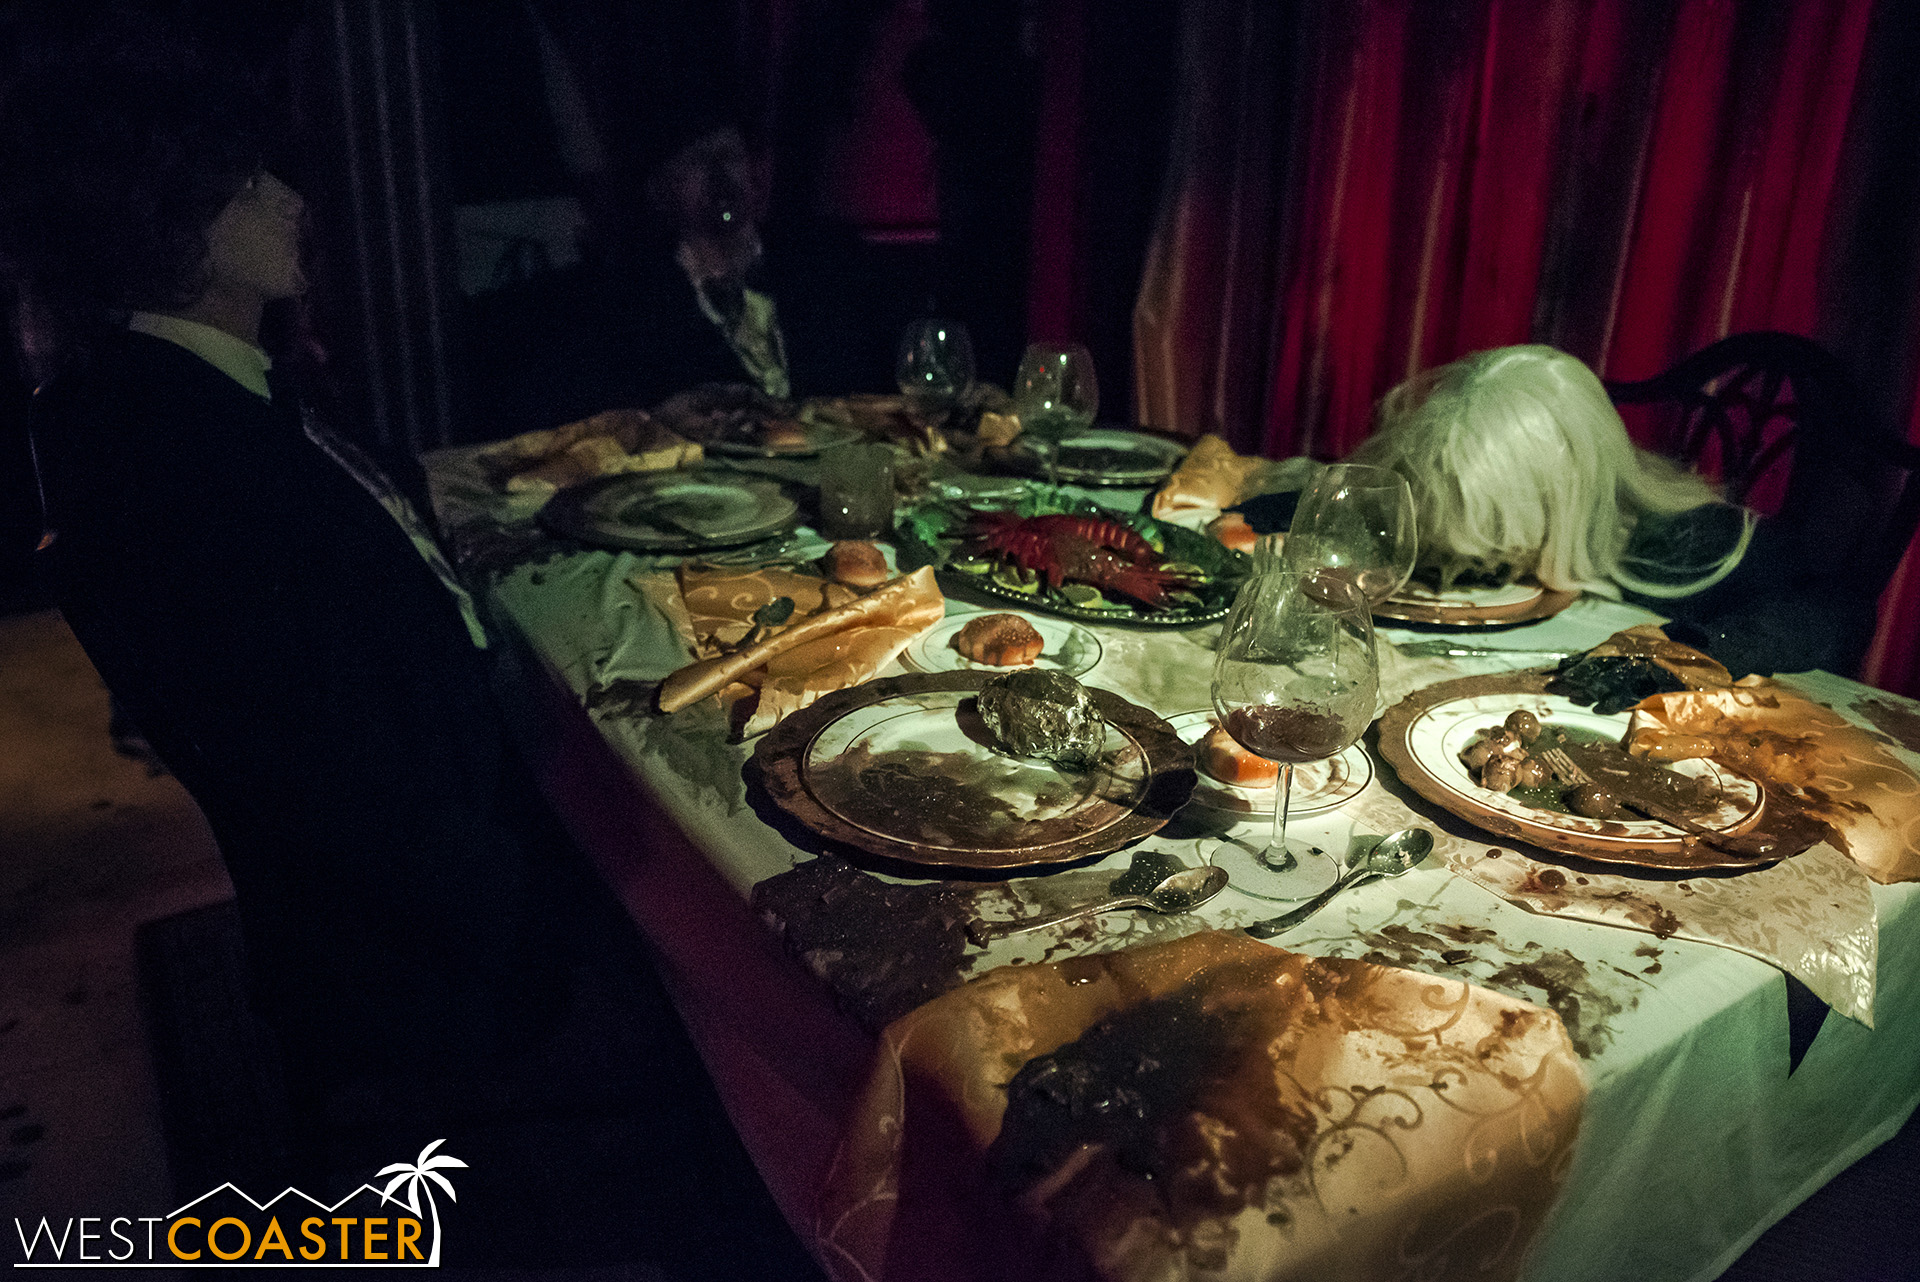 The theming in Feast has been enhanced and made to look even more disgusting.